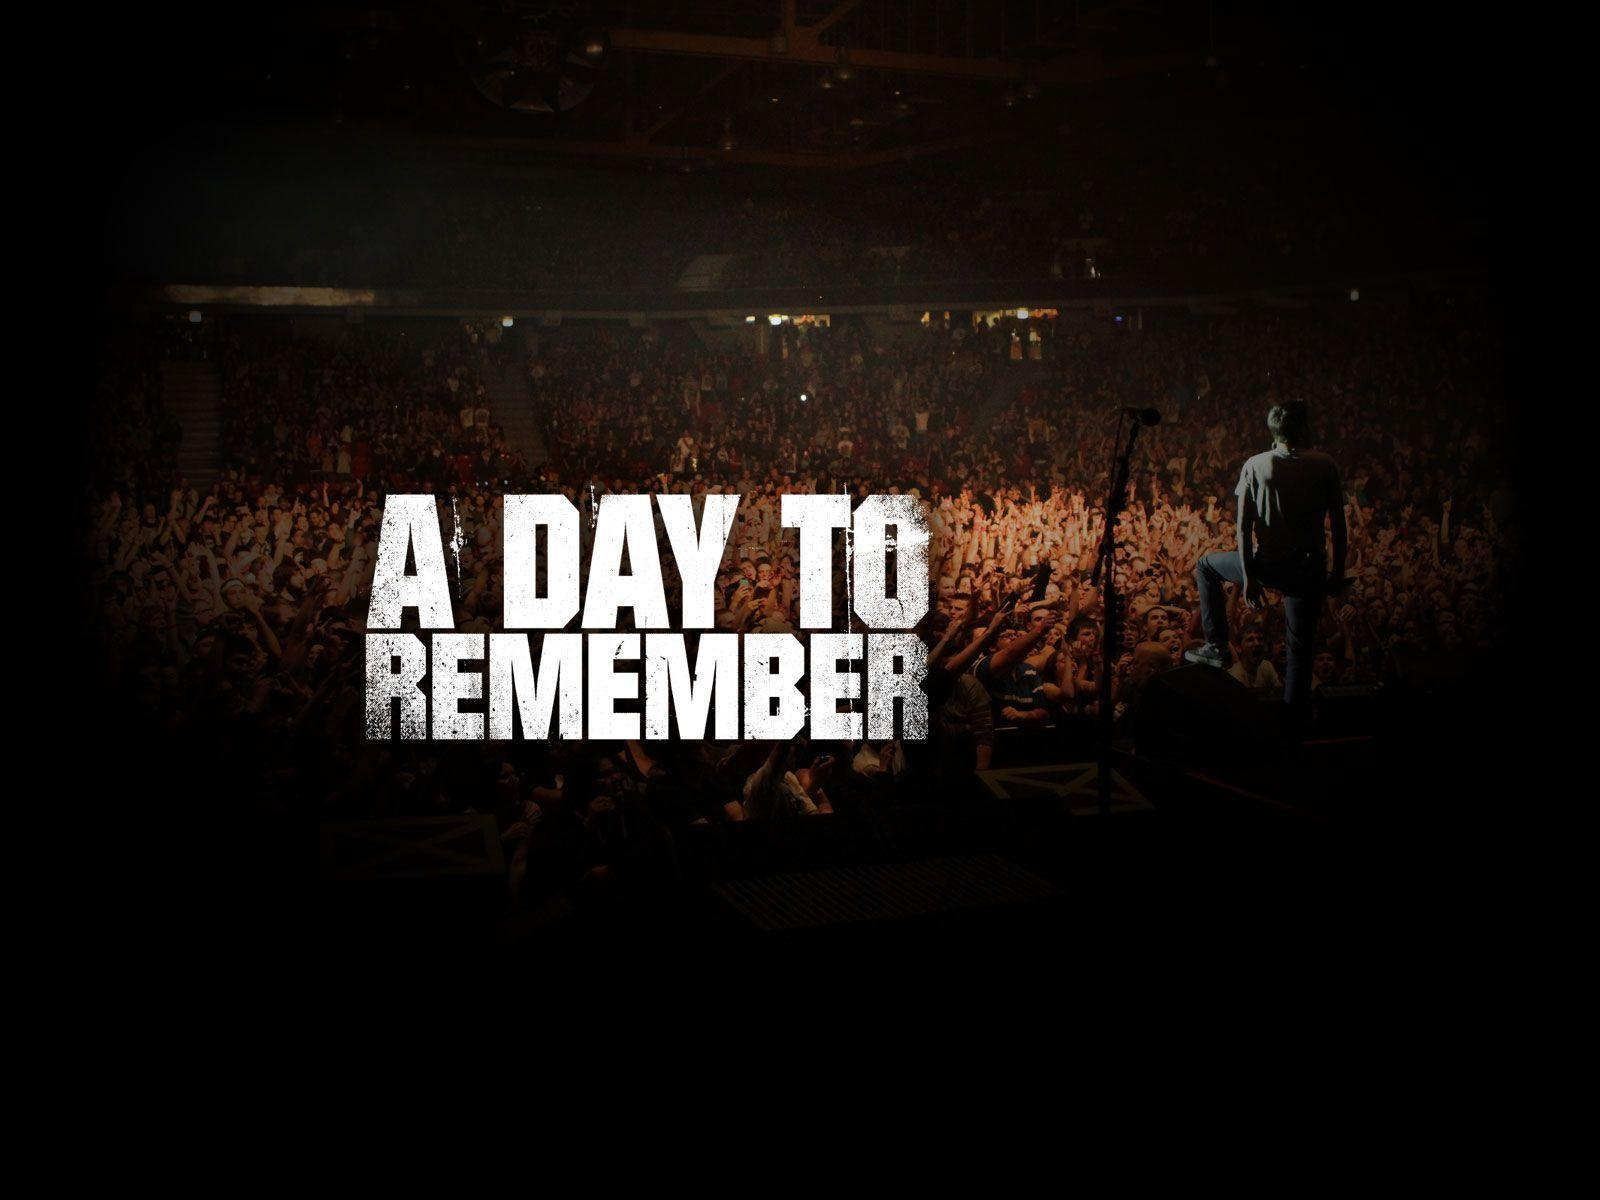 A Day To Remember Wallpapers - Wallpaper Cave A Day To Remember